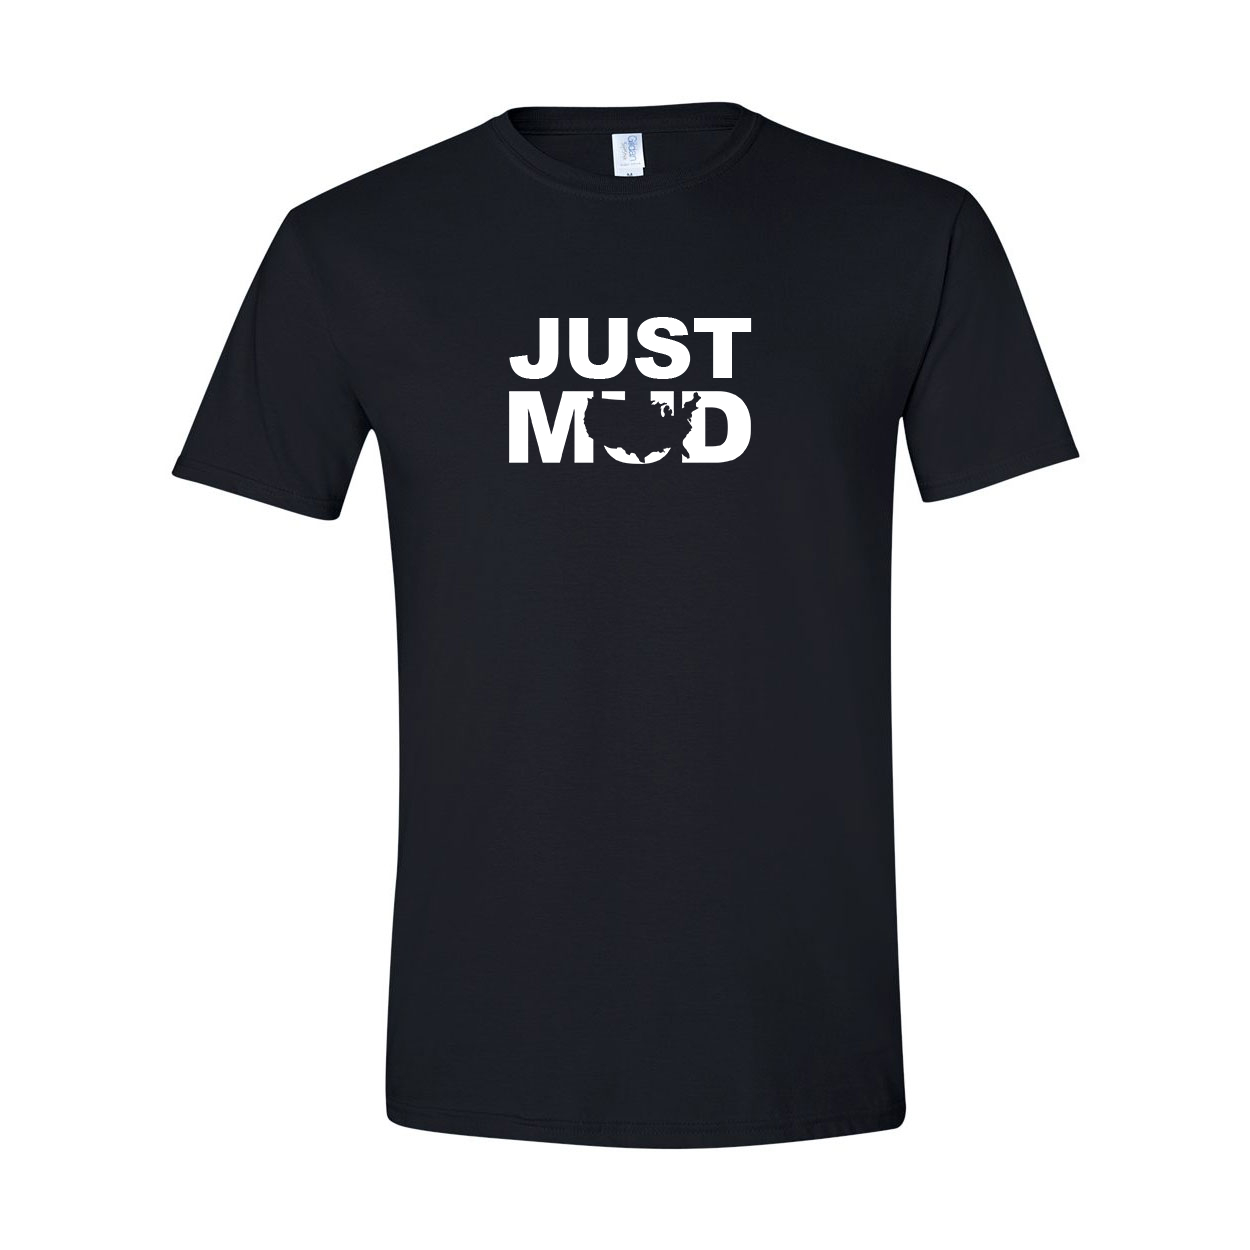 Mud United States JUST MUD T-Shirt Black (White Logo)